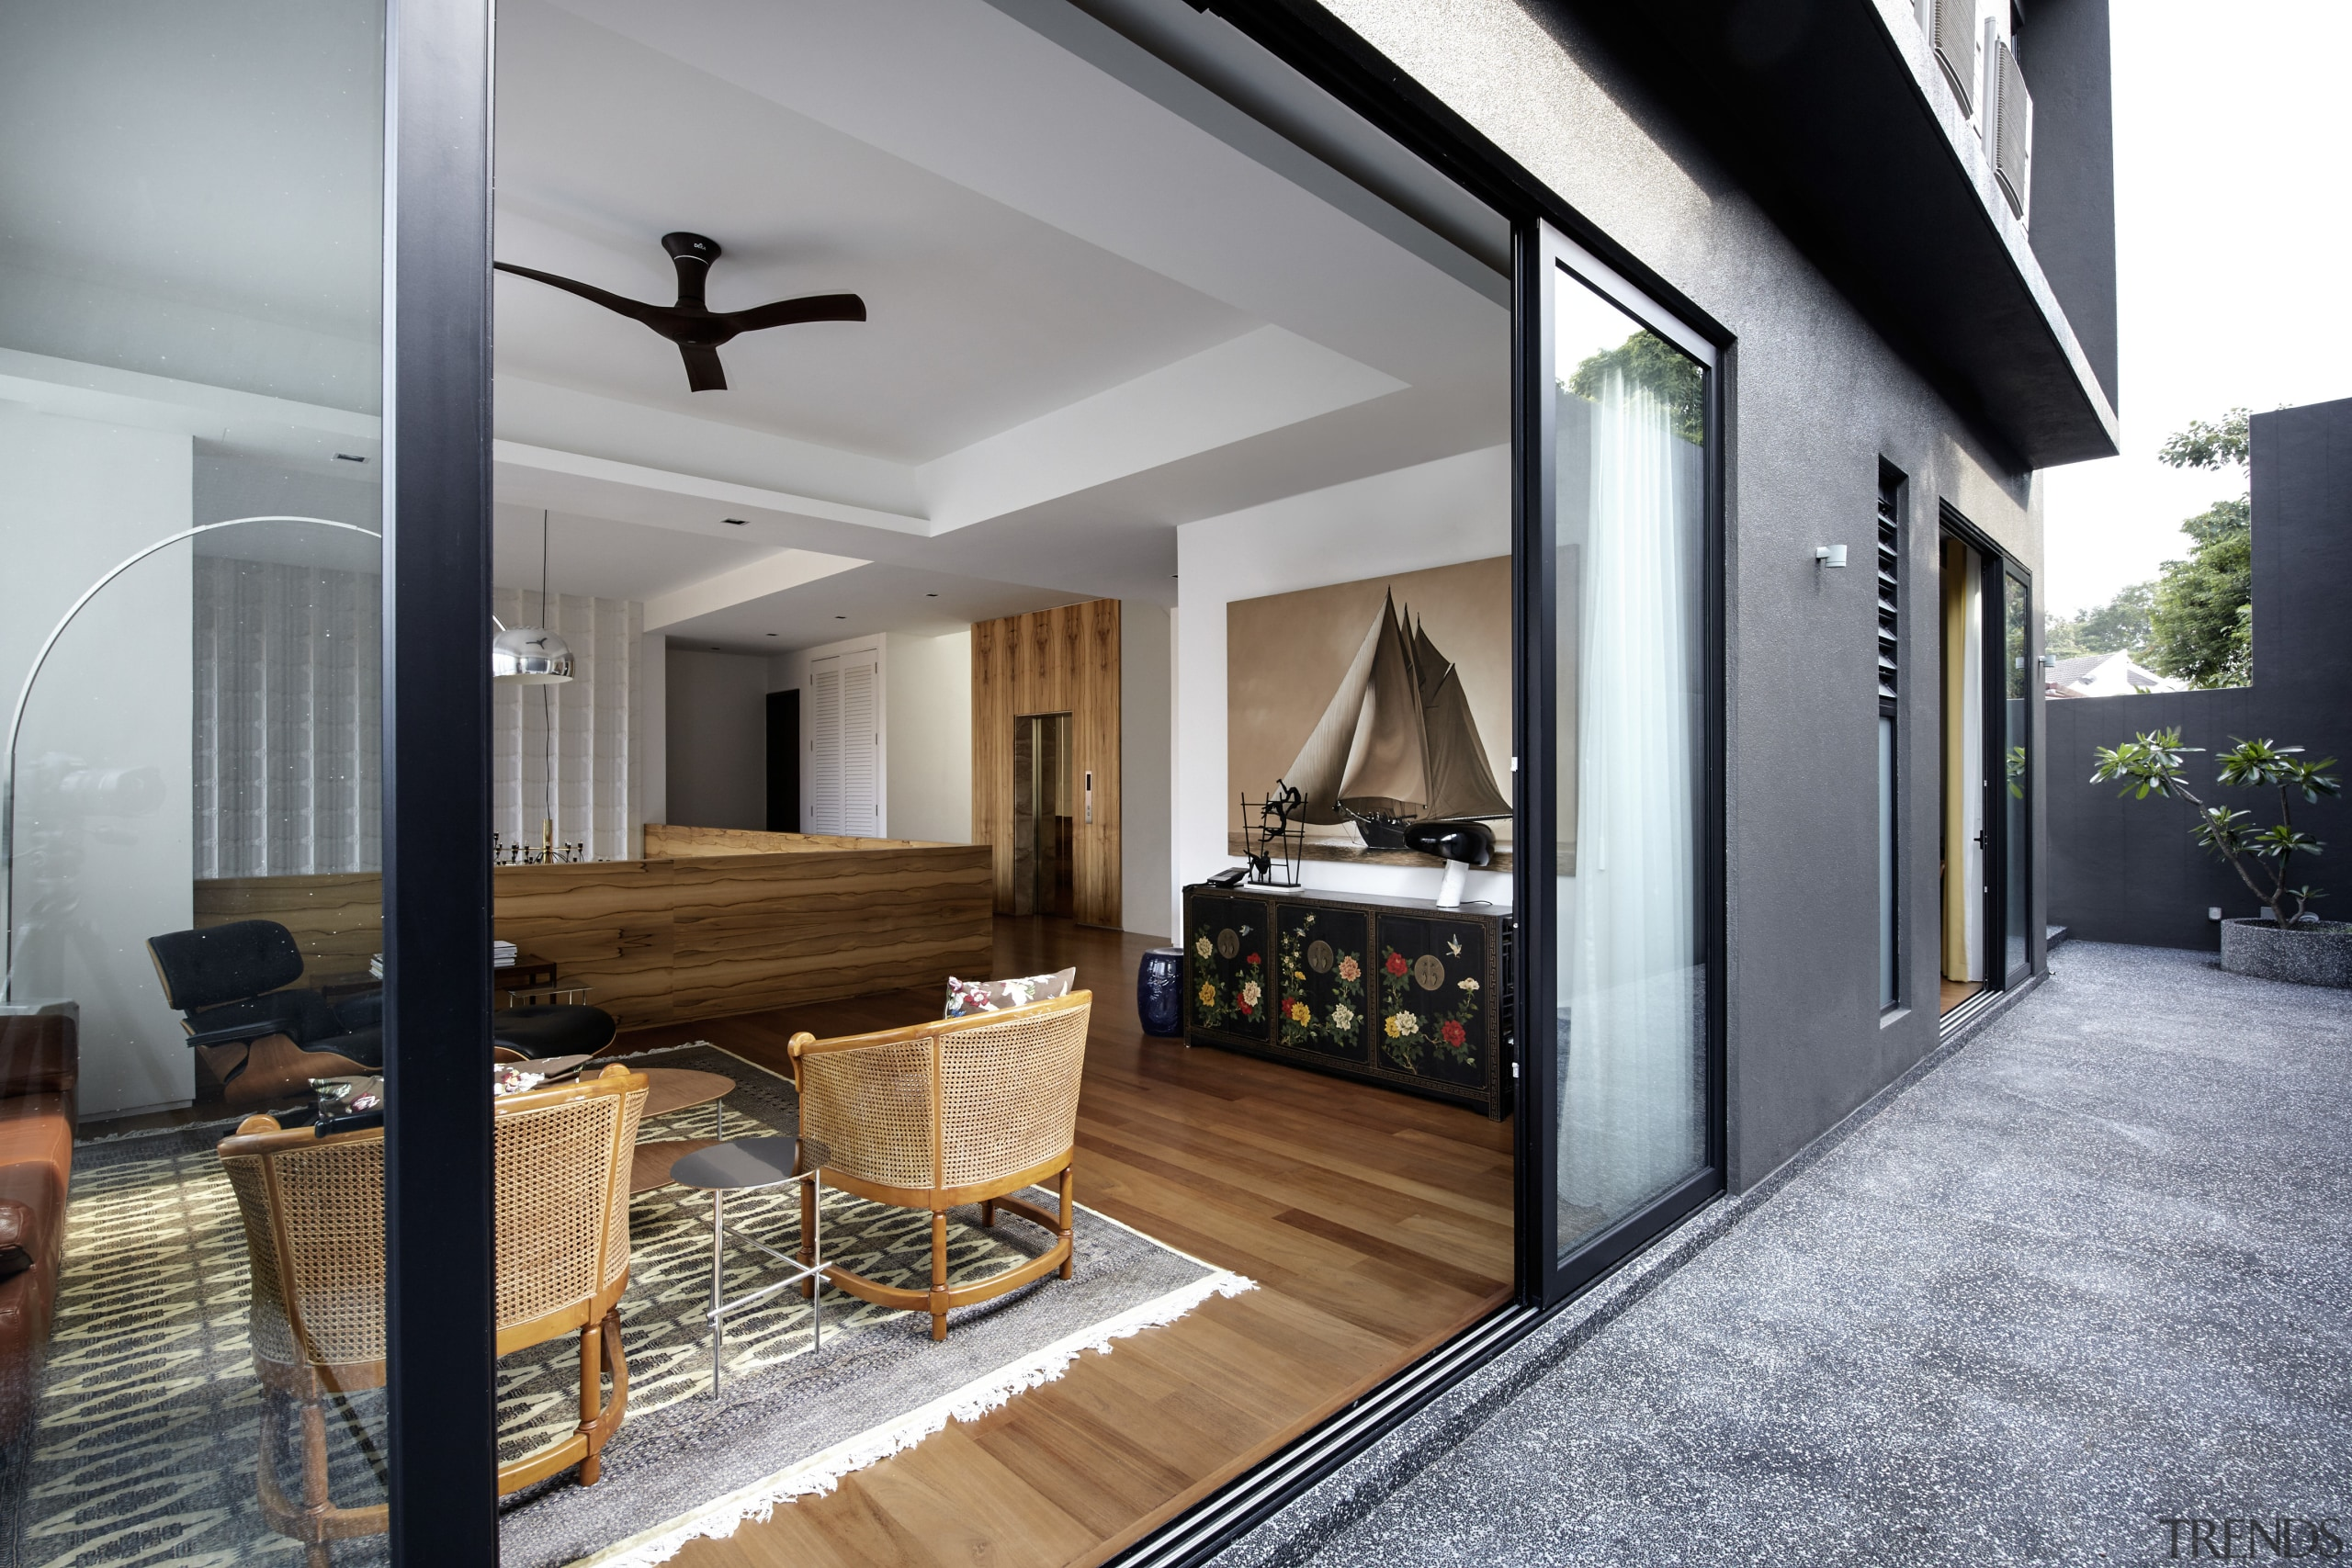 The family room and most bedrooms in this architecture, floor, flooring, house, interior design, living room, real estate, gray